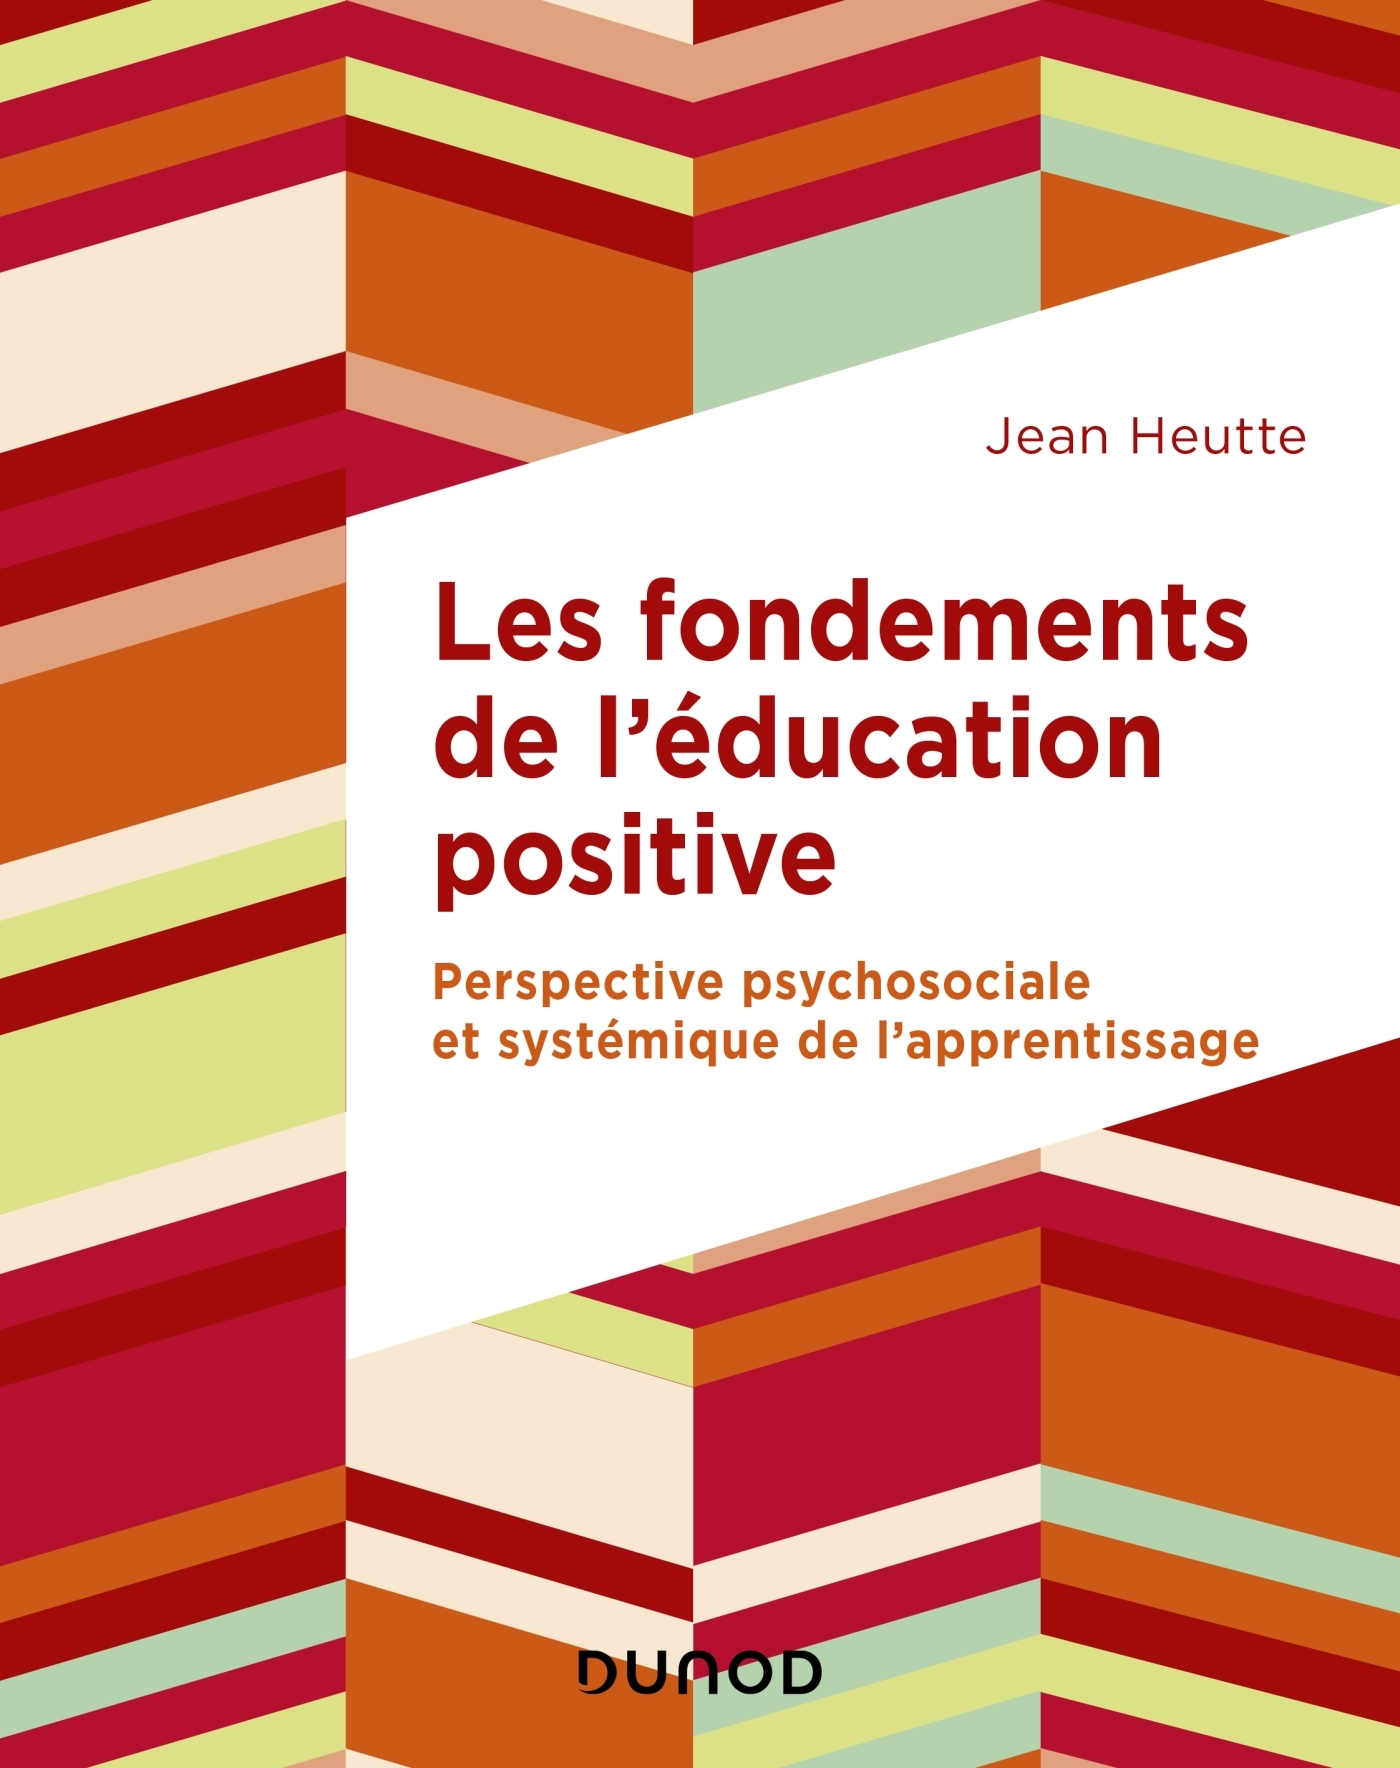 LES FONDEMENTS DE L'EDUCATION POSITIVE - PERSPECTIVE PSYCHOSOCIALE ET SYSTEMIQUE DE L'APPRENTISSAGE